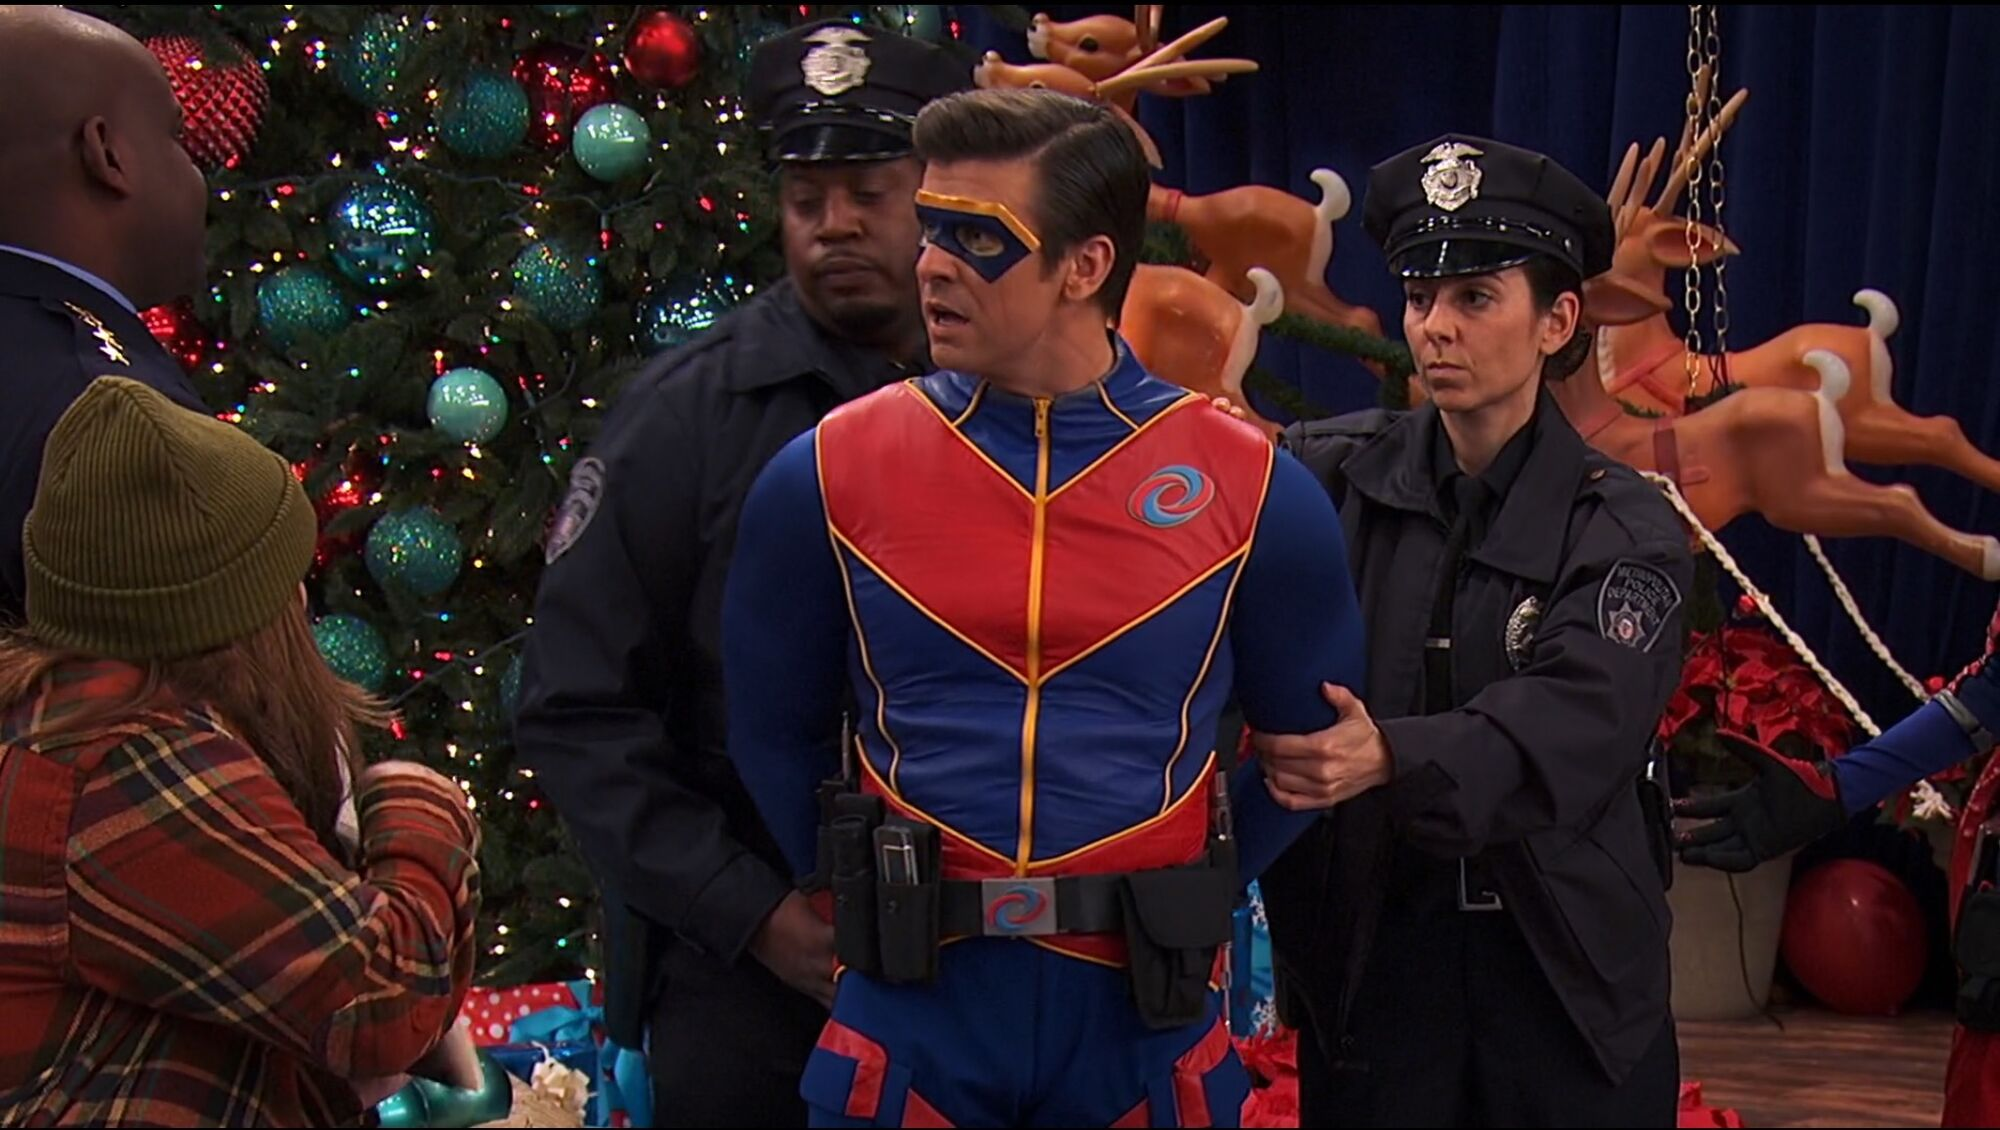 House Bunny Characters with regard to christmas danger | henry danger wiki | fandom poweredwikia